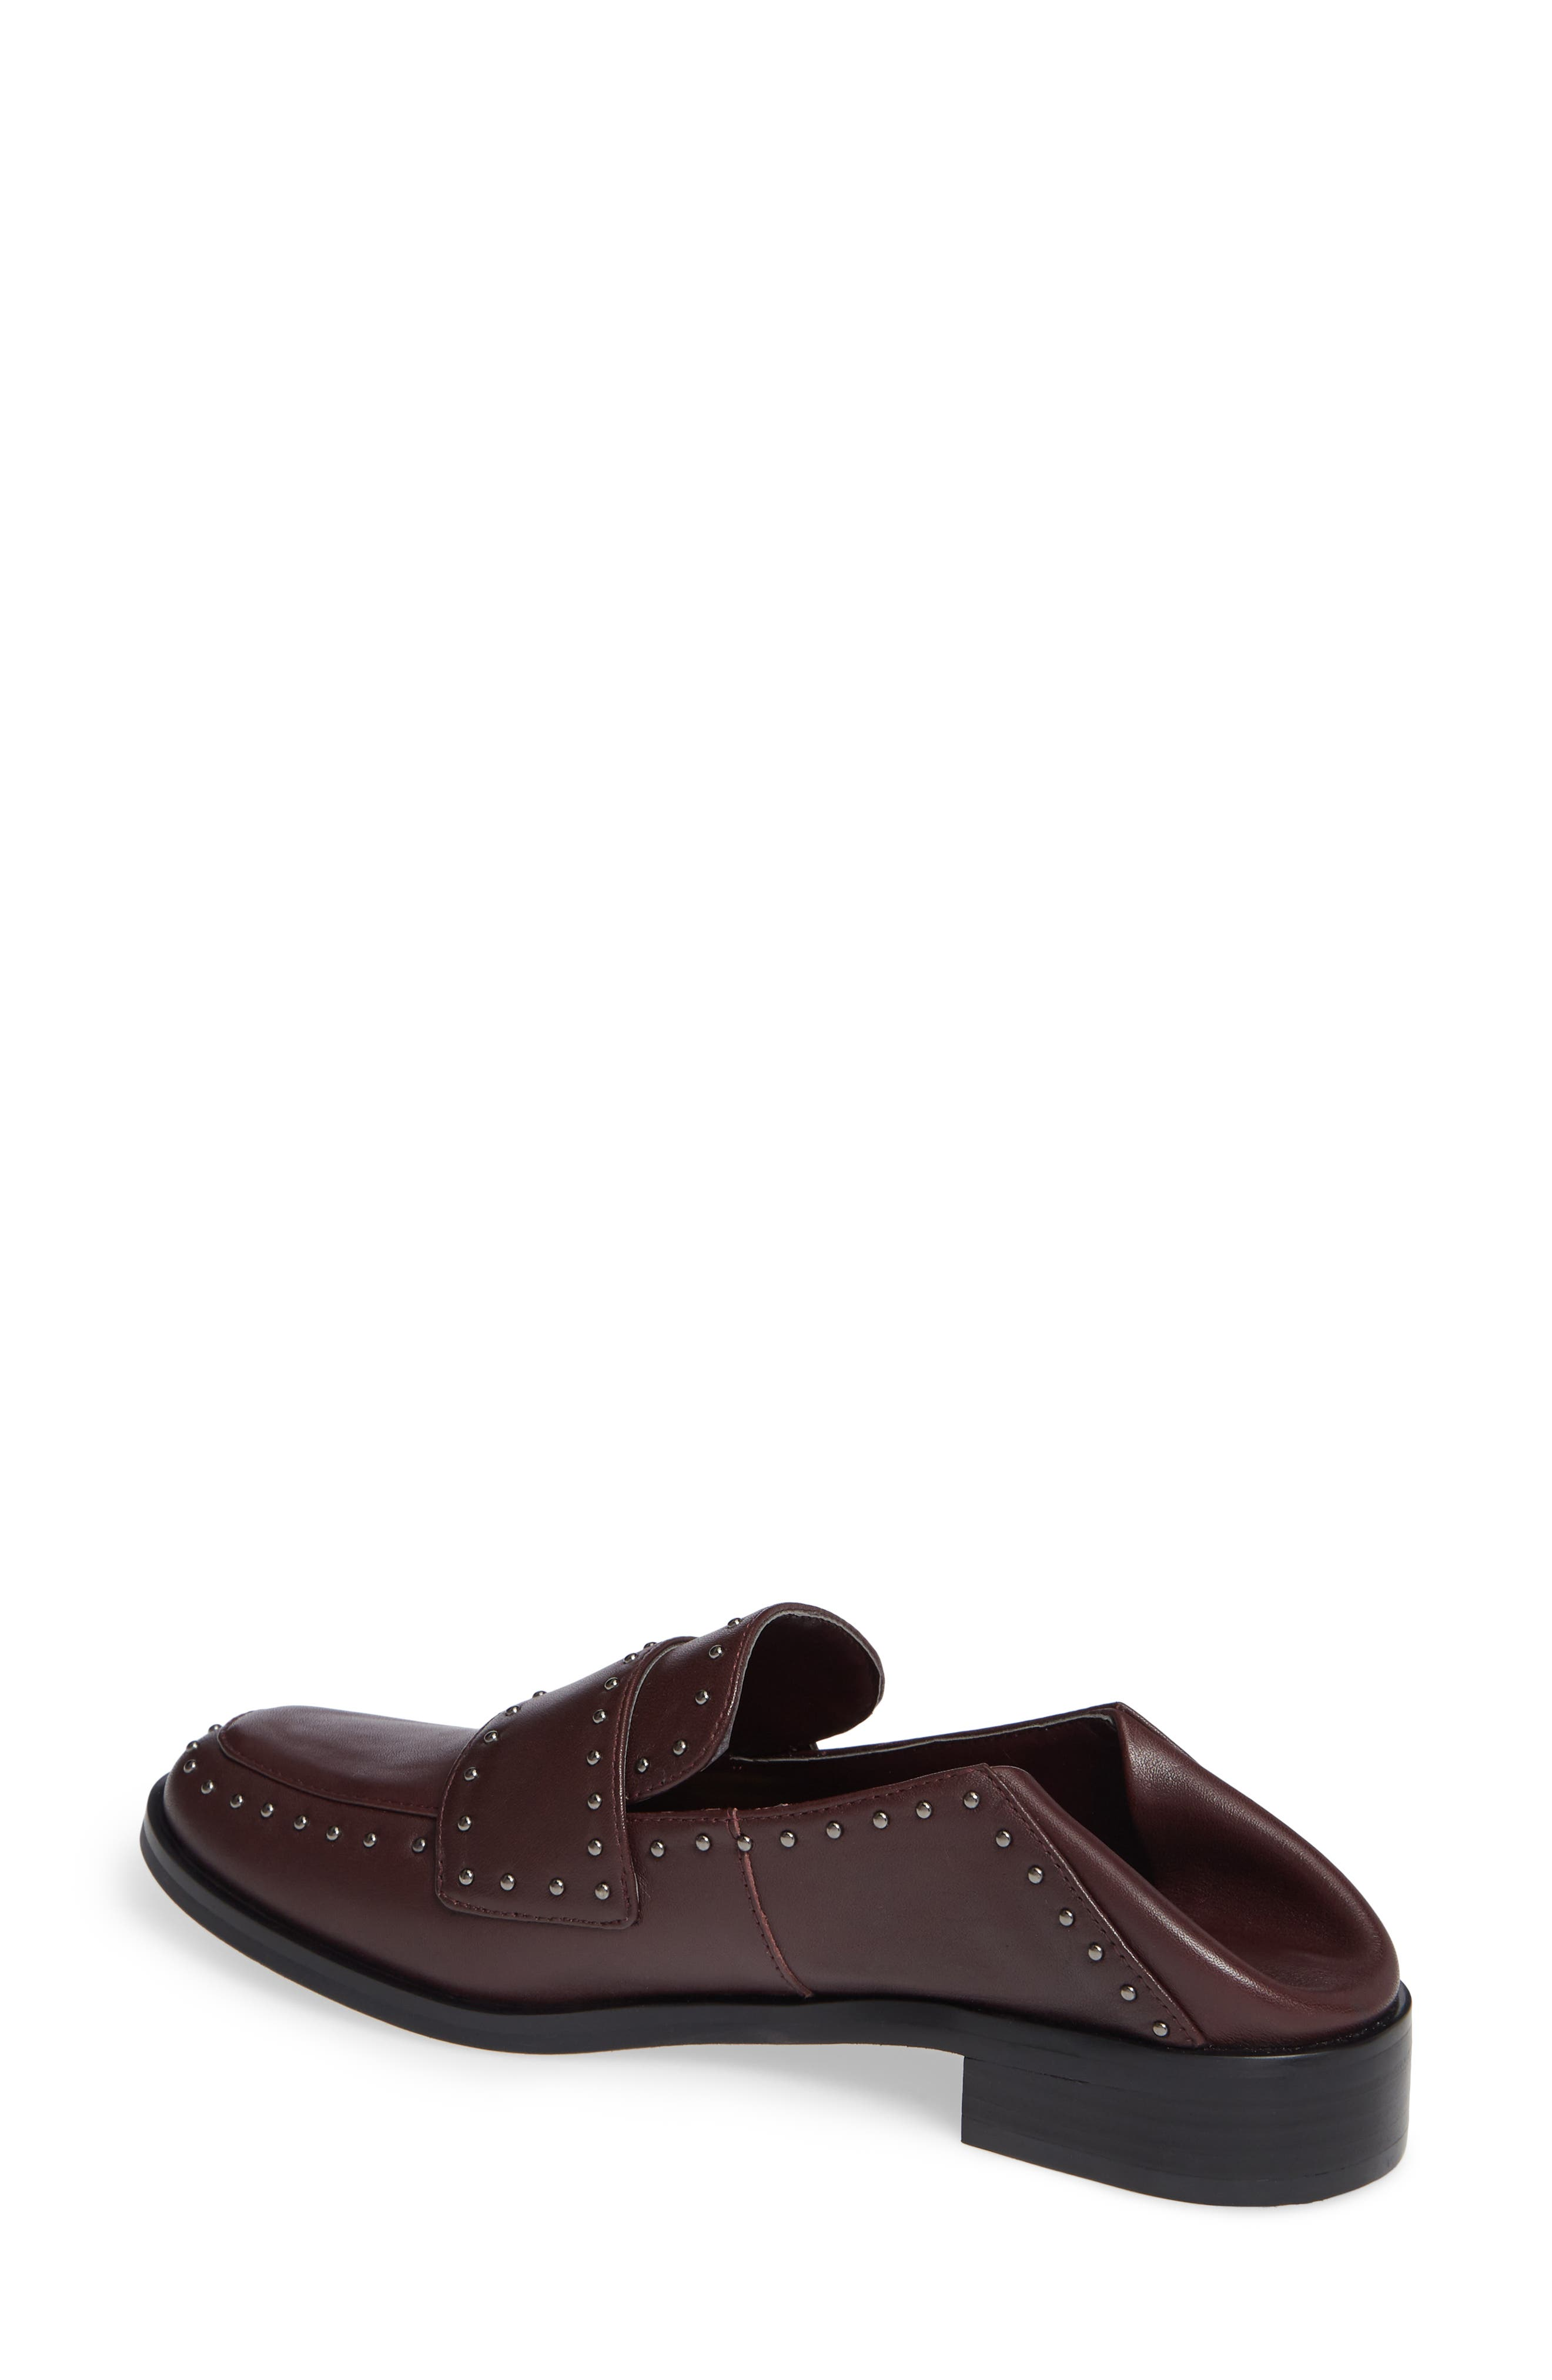 Nox Collapsible Loafer,                             Alternate thumbnail 3, color,                             930